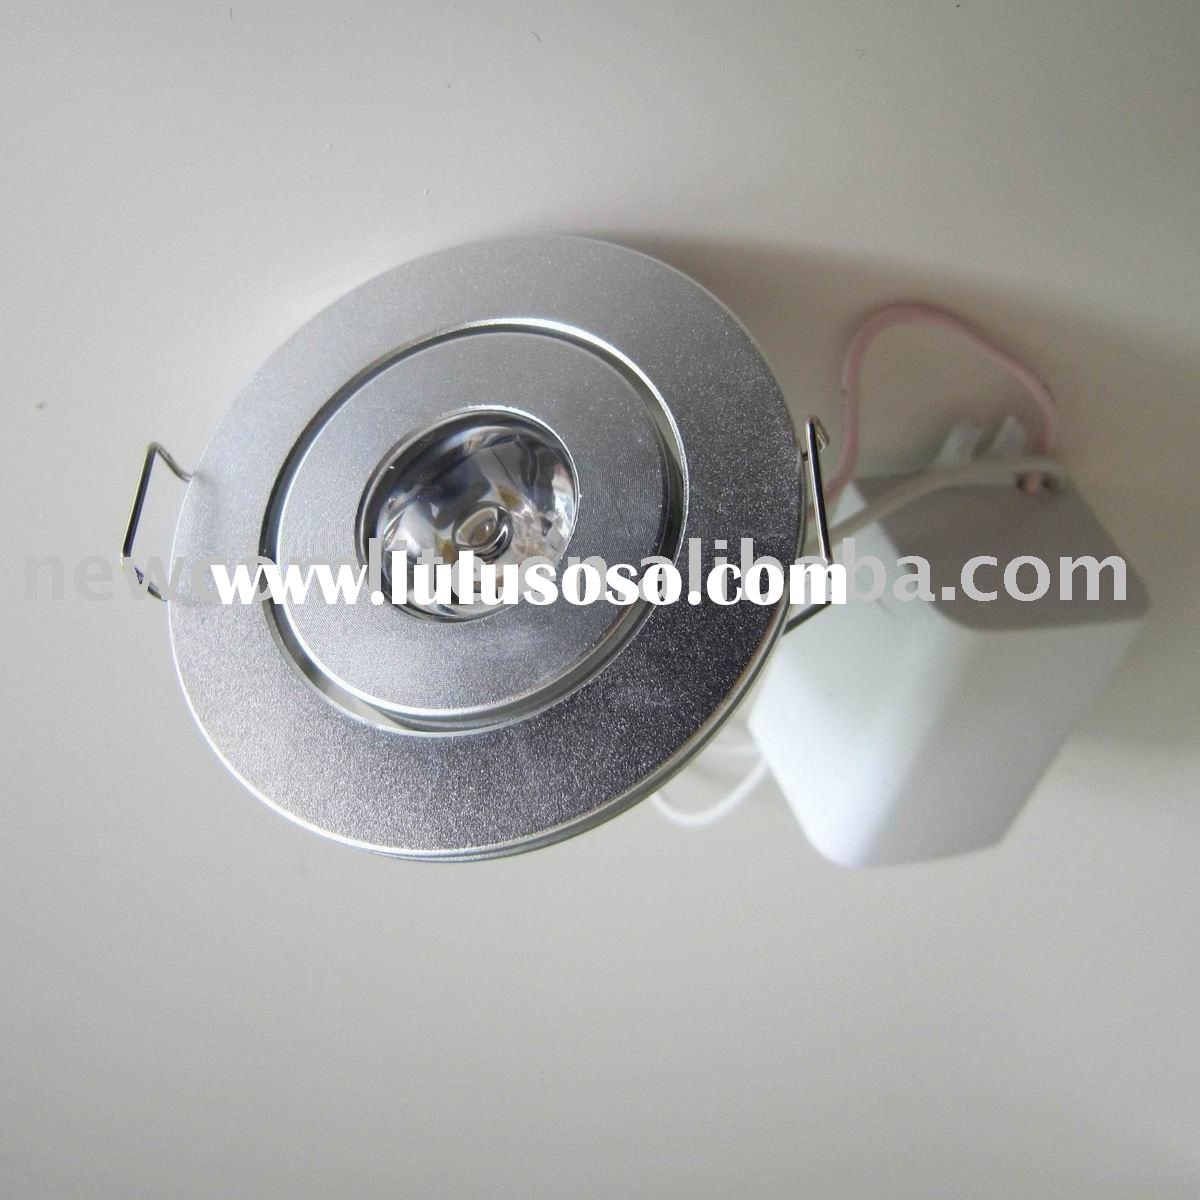 Bright 1W LED downlight Replace 10W halogen bulb